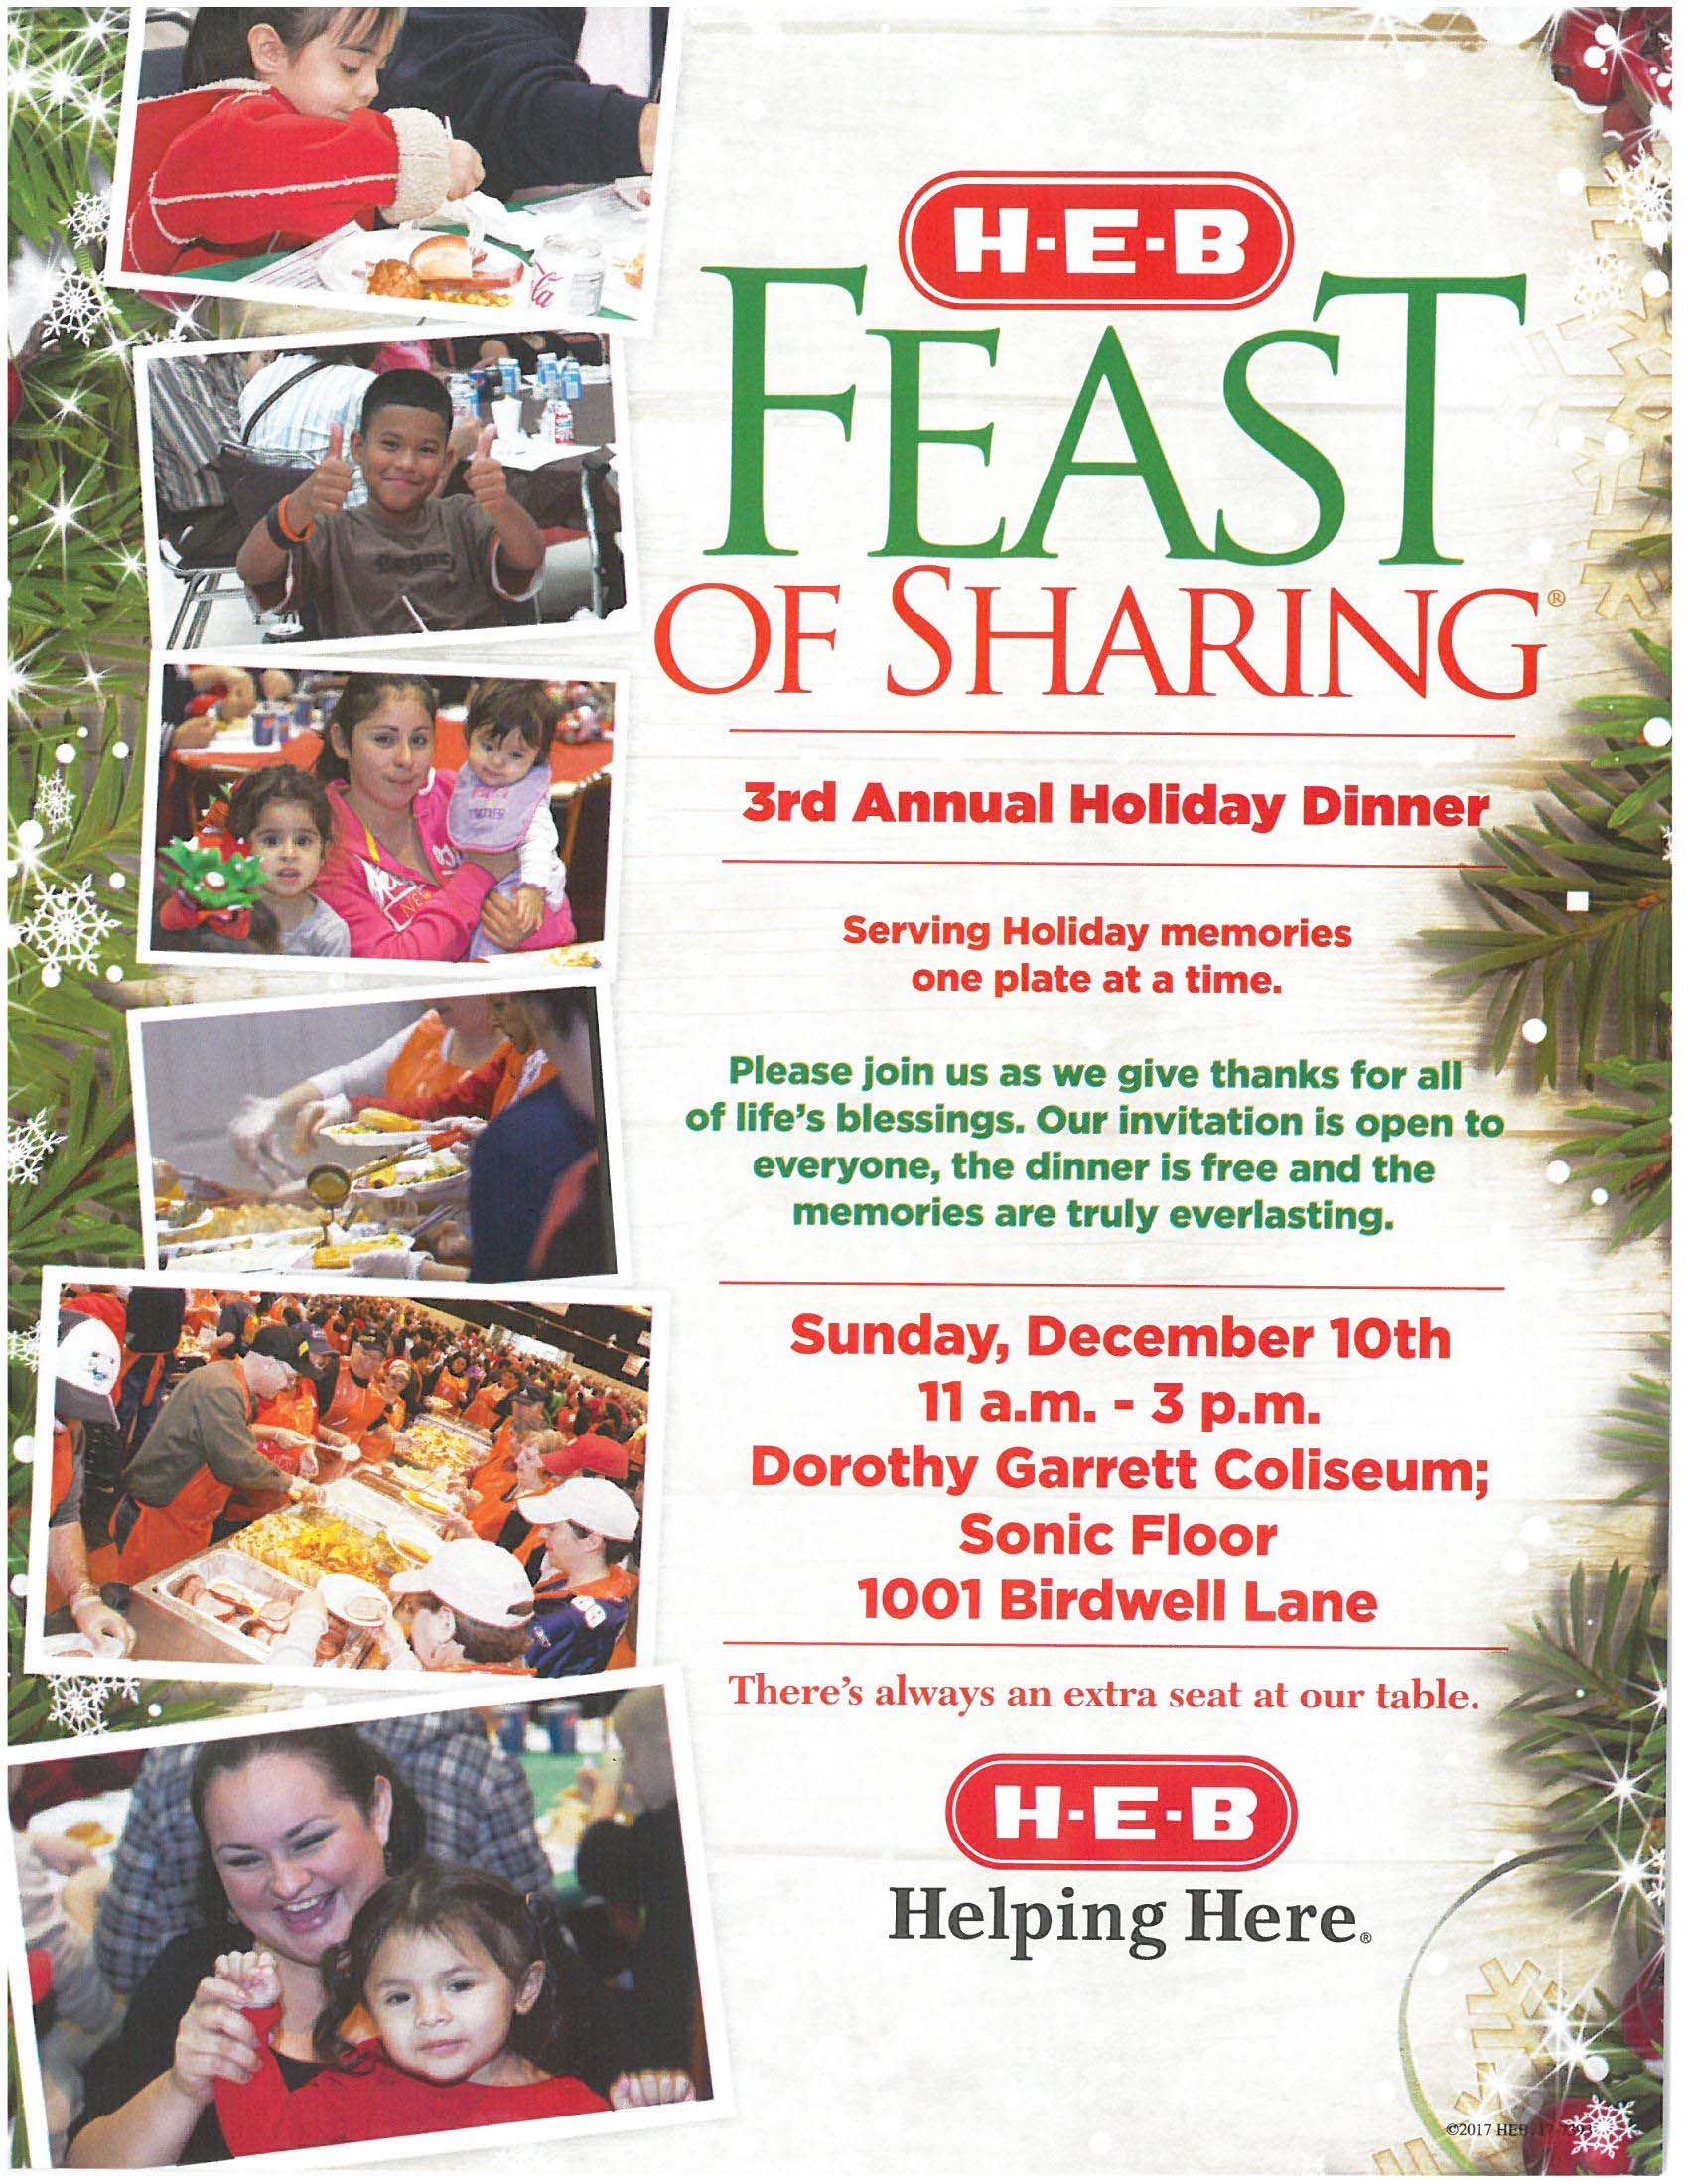 HEB Feast of Sharing 2017